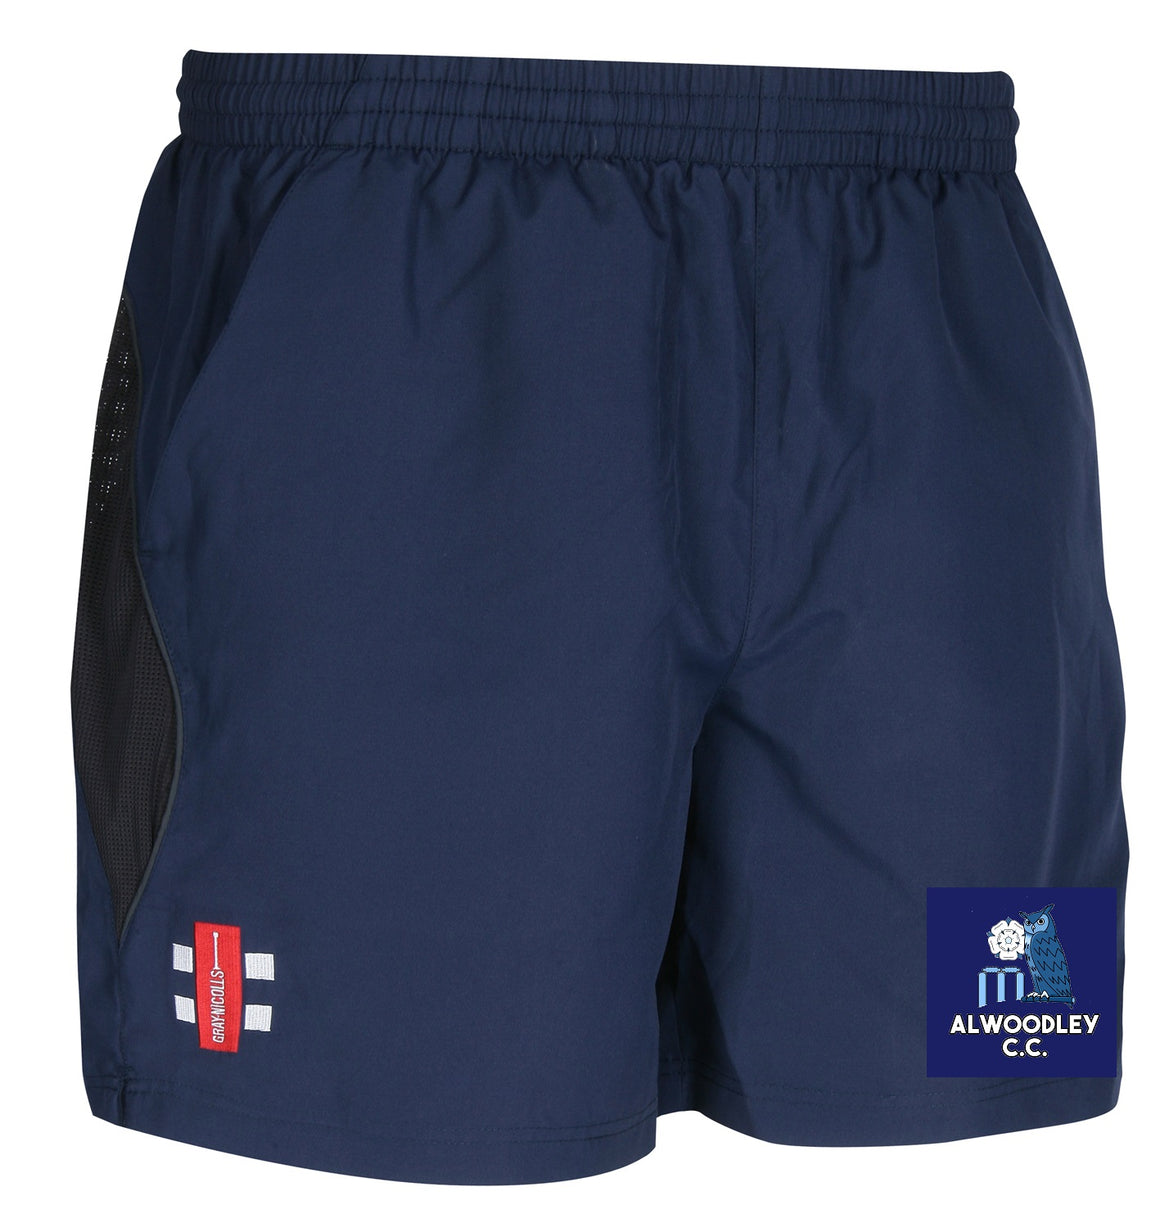 Alwoodley Training Shorts